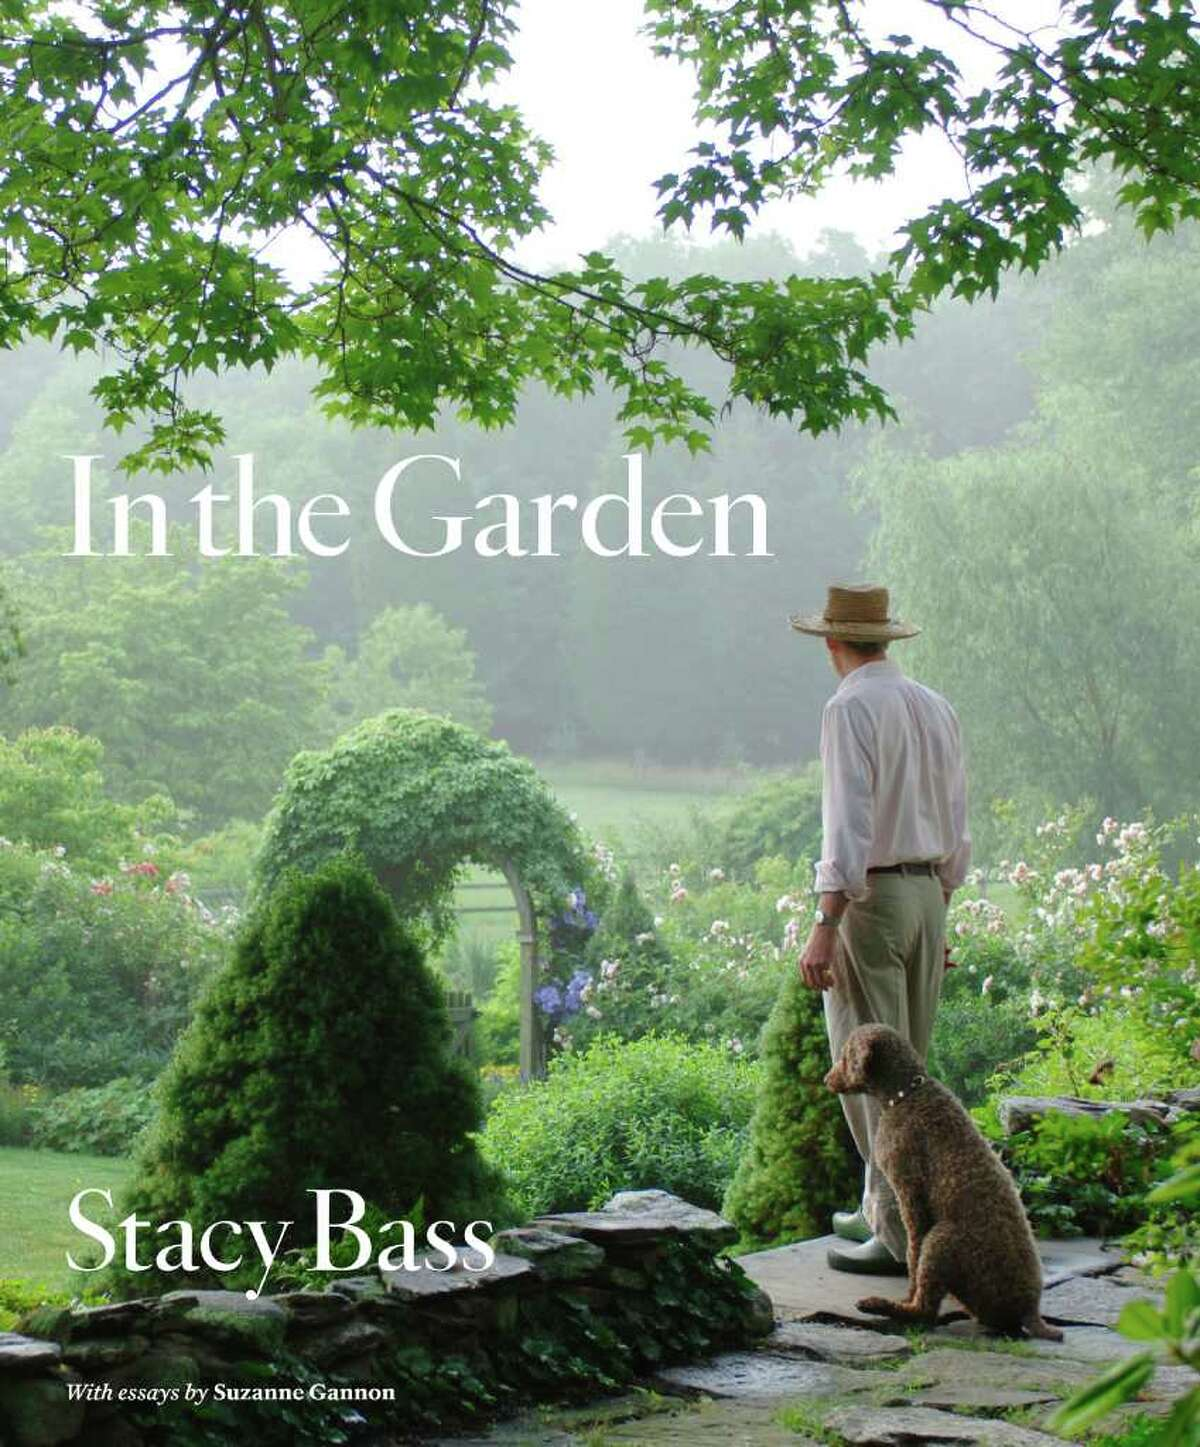 """Westport fine-art photographer Stacy Bass is preparing for the release of her first book, """"In the Garden."""" Above is the book's cover design."""